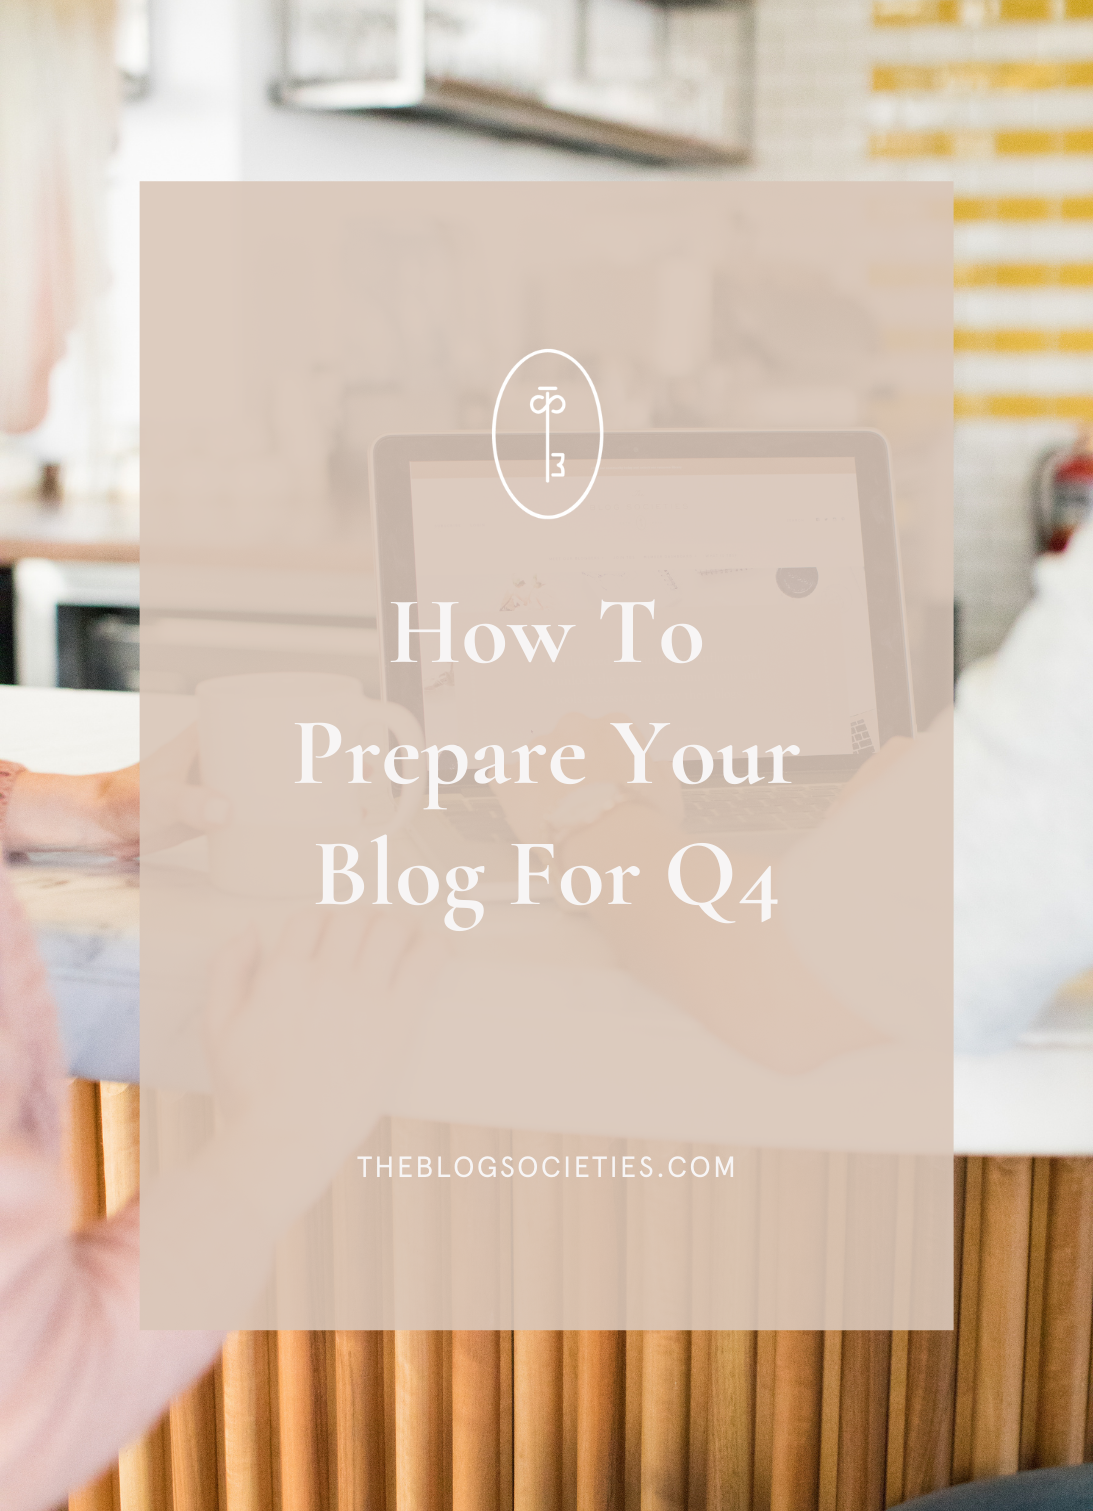 How To Prepare Your Blog For Q4